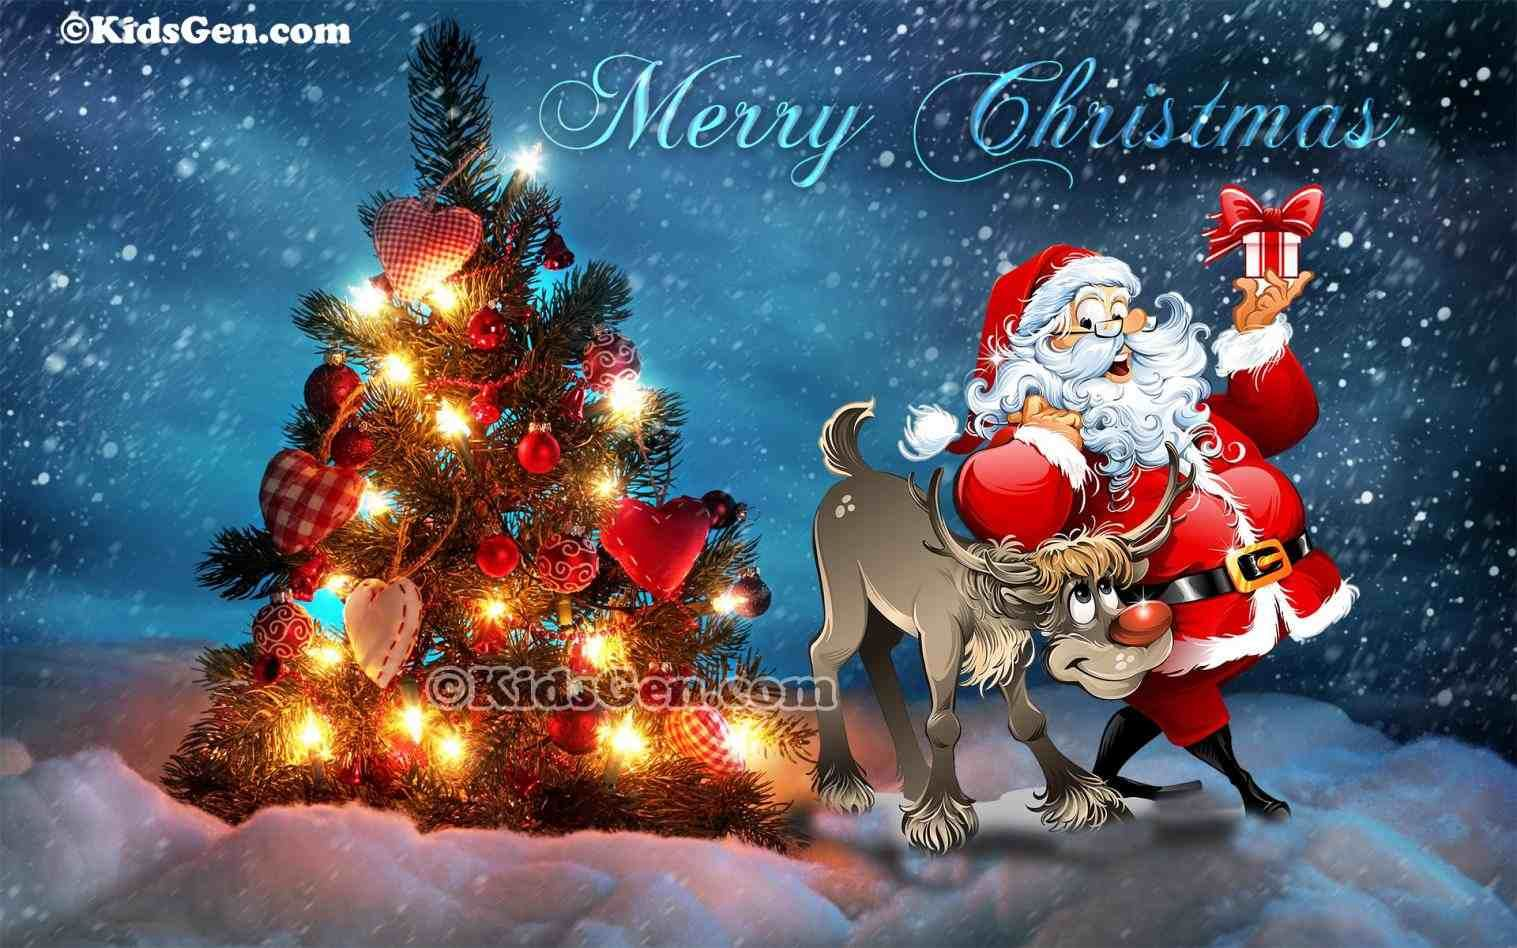 New Post Pretty Merry Christmas Wallpaper With Santa